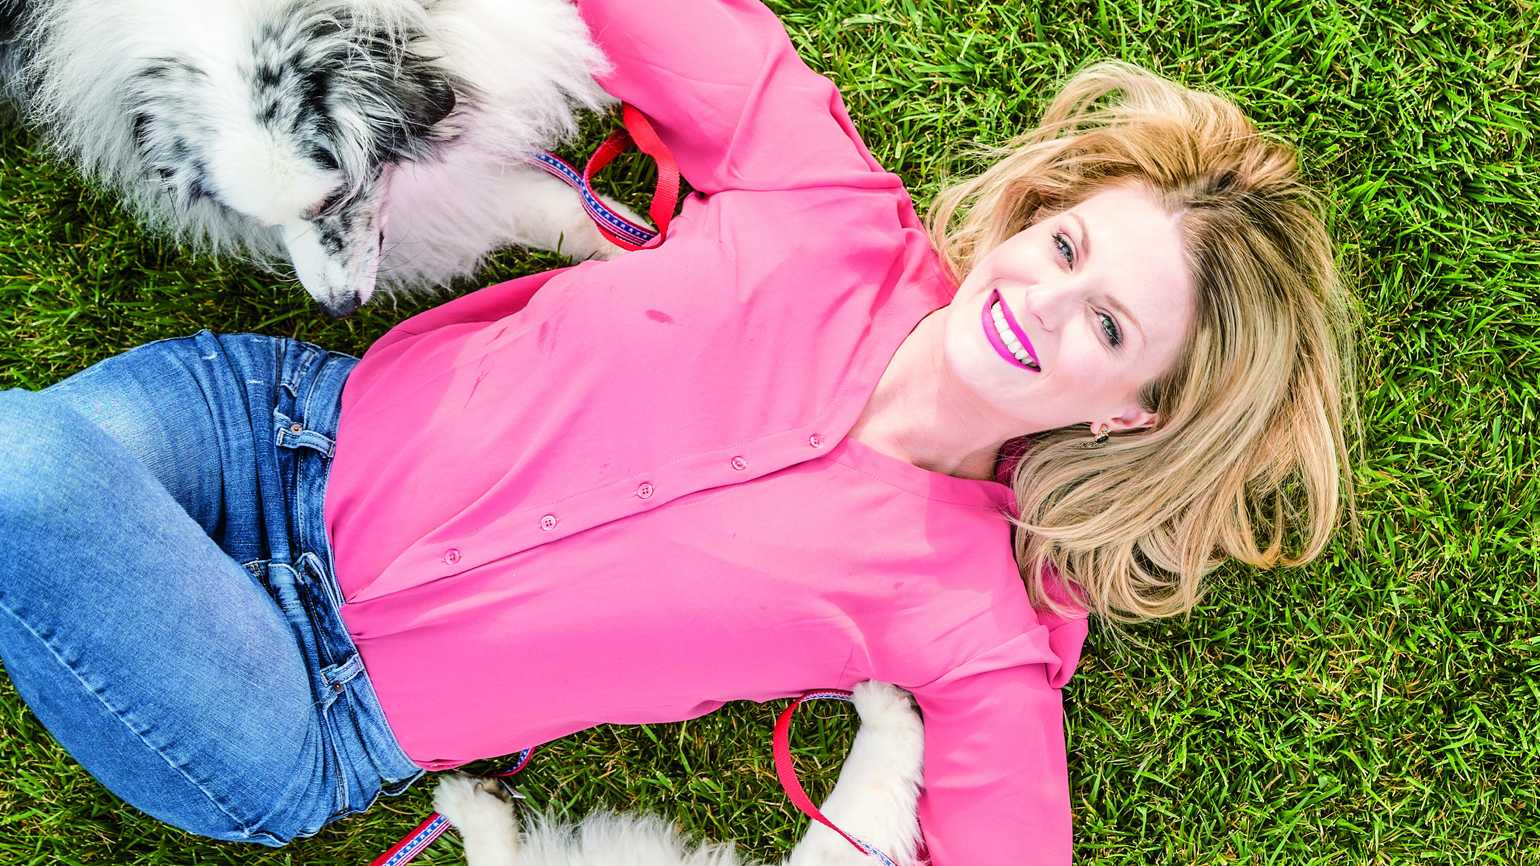 Alisa Johnson, founder of Dogs on Deployment, poses with her two dogs.